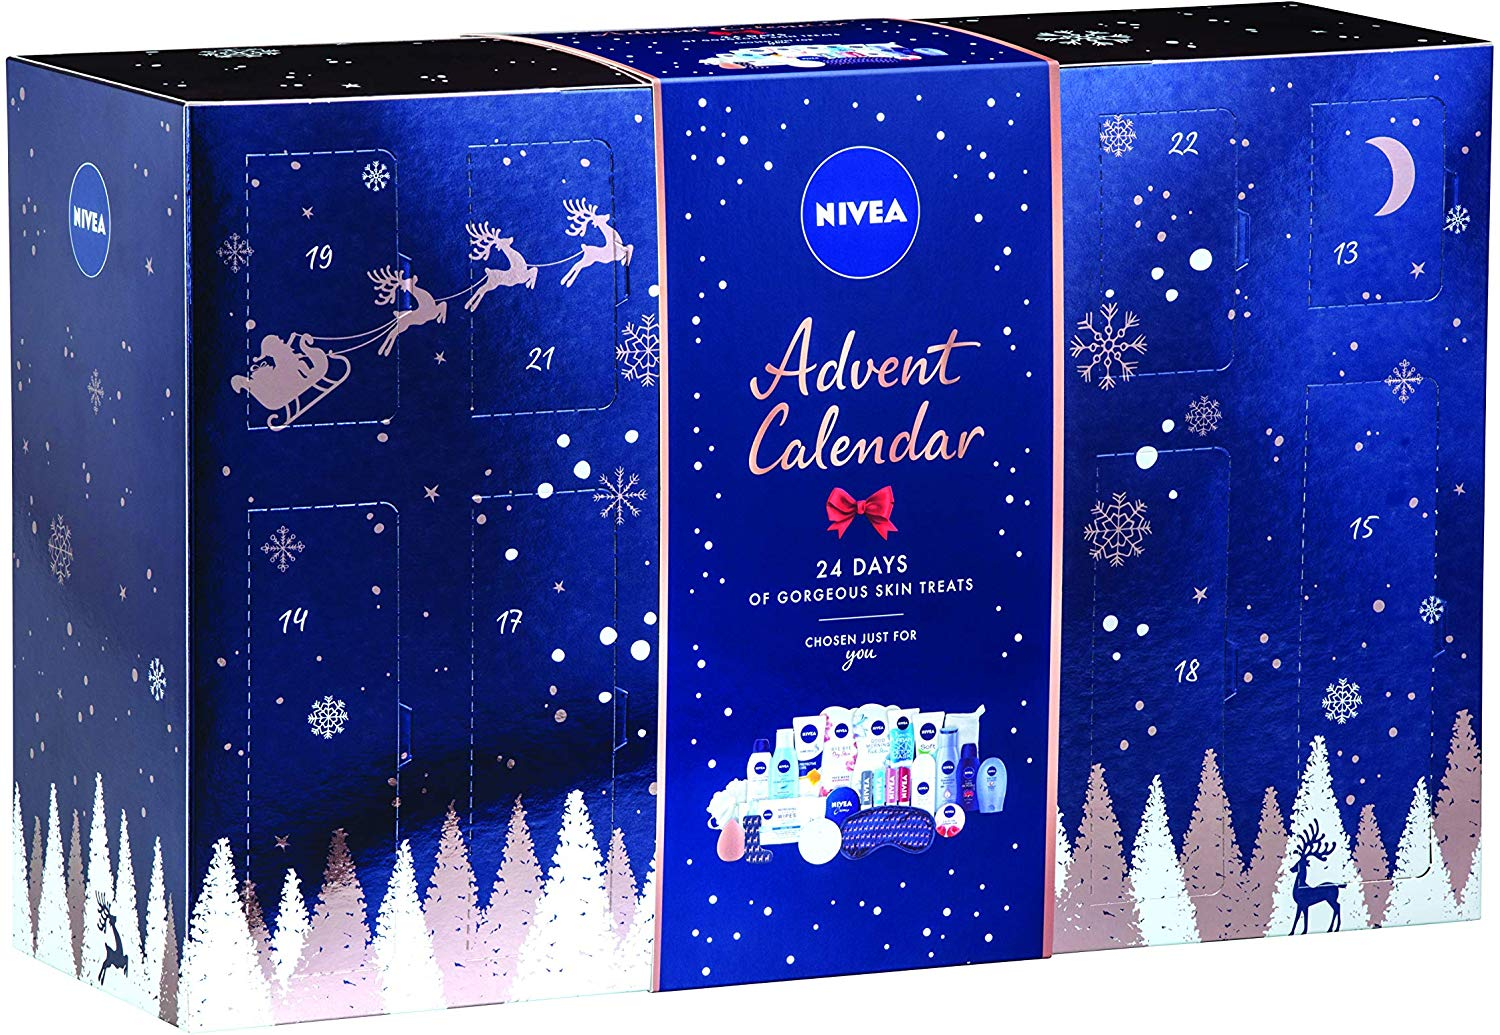 NIVEA Festive Beauty Advent Calendar 2019, Contains 24 Brilliant Beauty Gifts